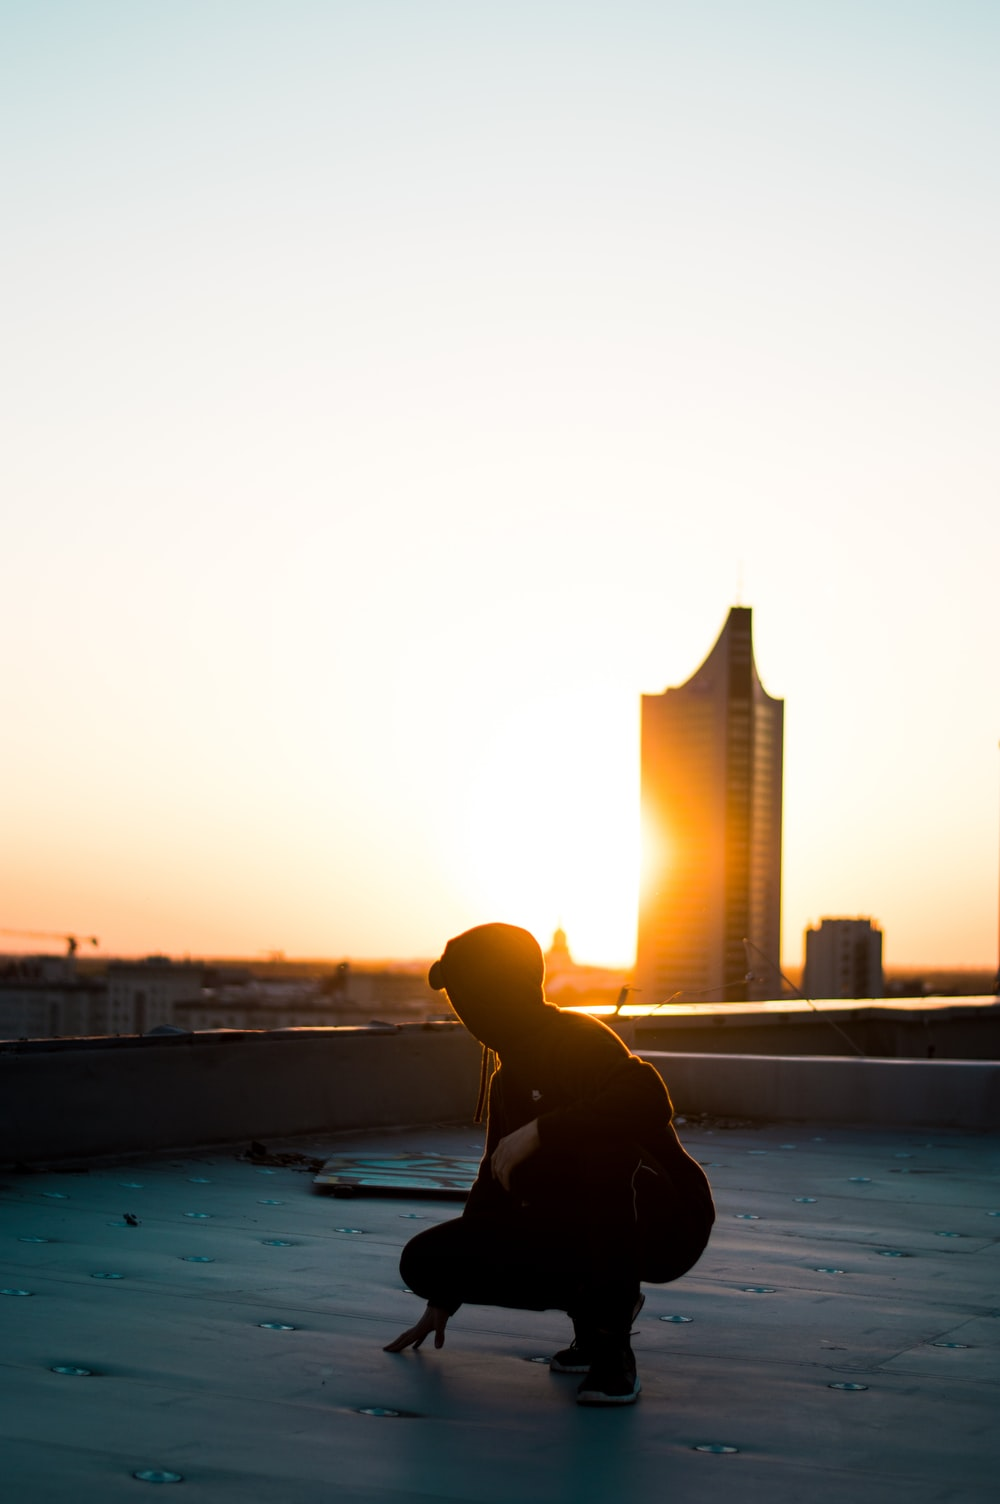 silhouette photography of woman squatting on rooftop